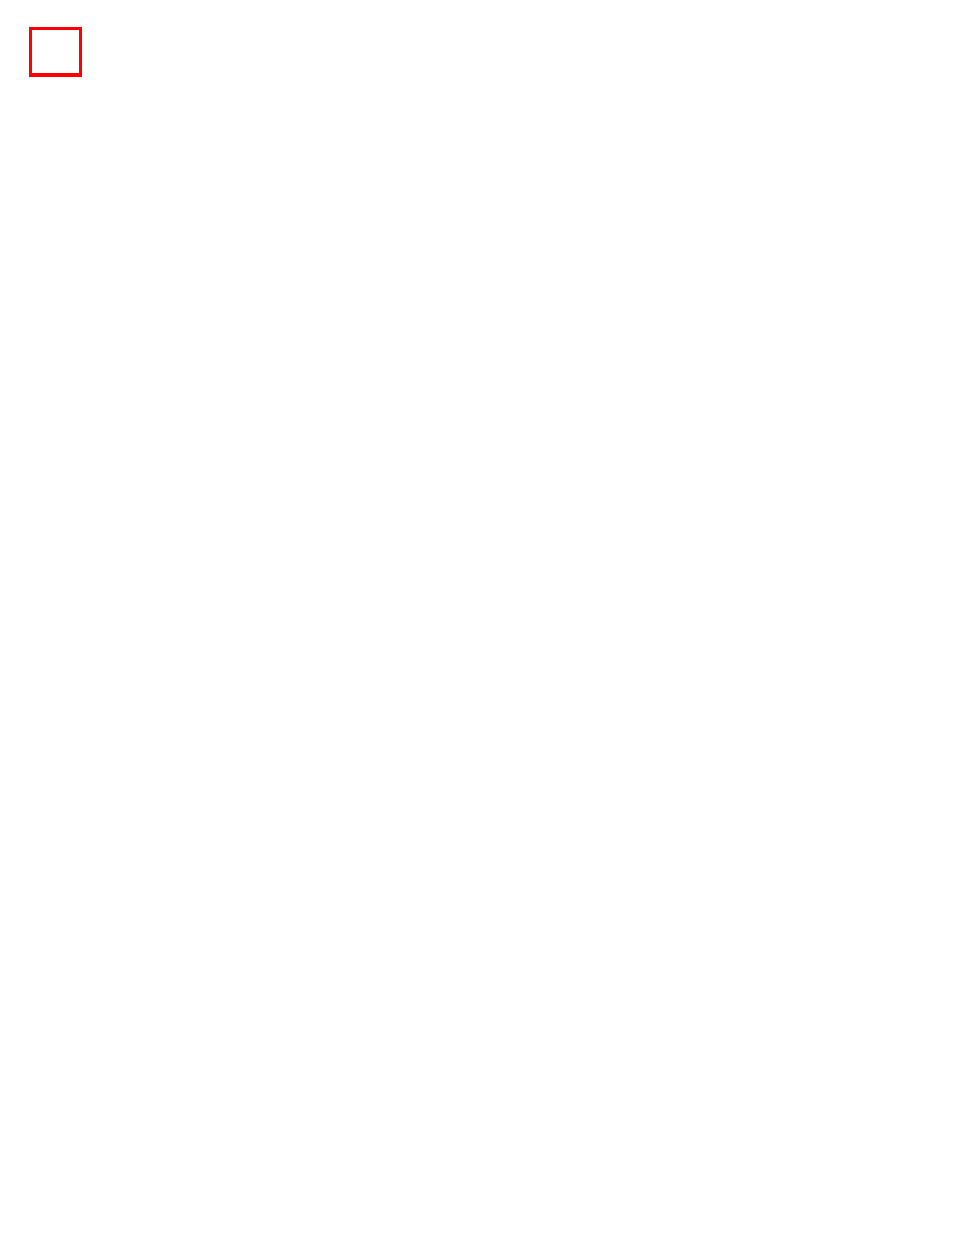 John Deere Service Manual For Model 282 316 Lawn Tractor Wiring Diagram 4720 Forage Harvester Technical Pdf Rh Epcatalogs Com Manuals